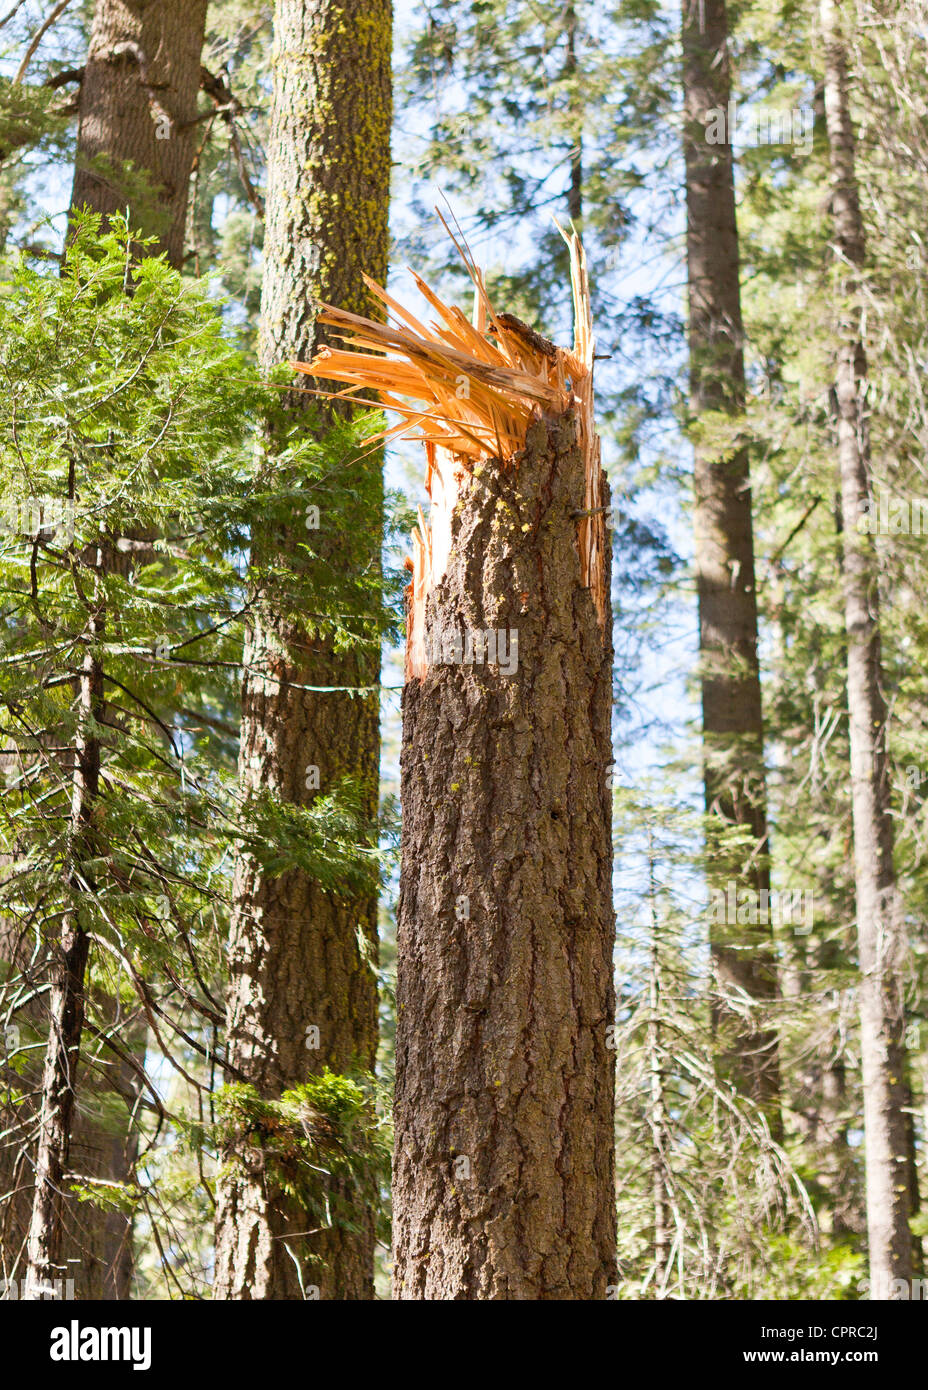 Broken tree trunk due to high winds - Stock Image